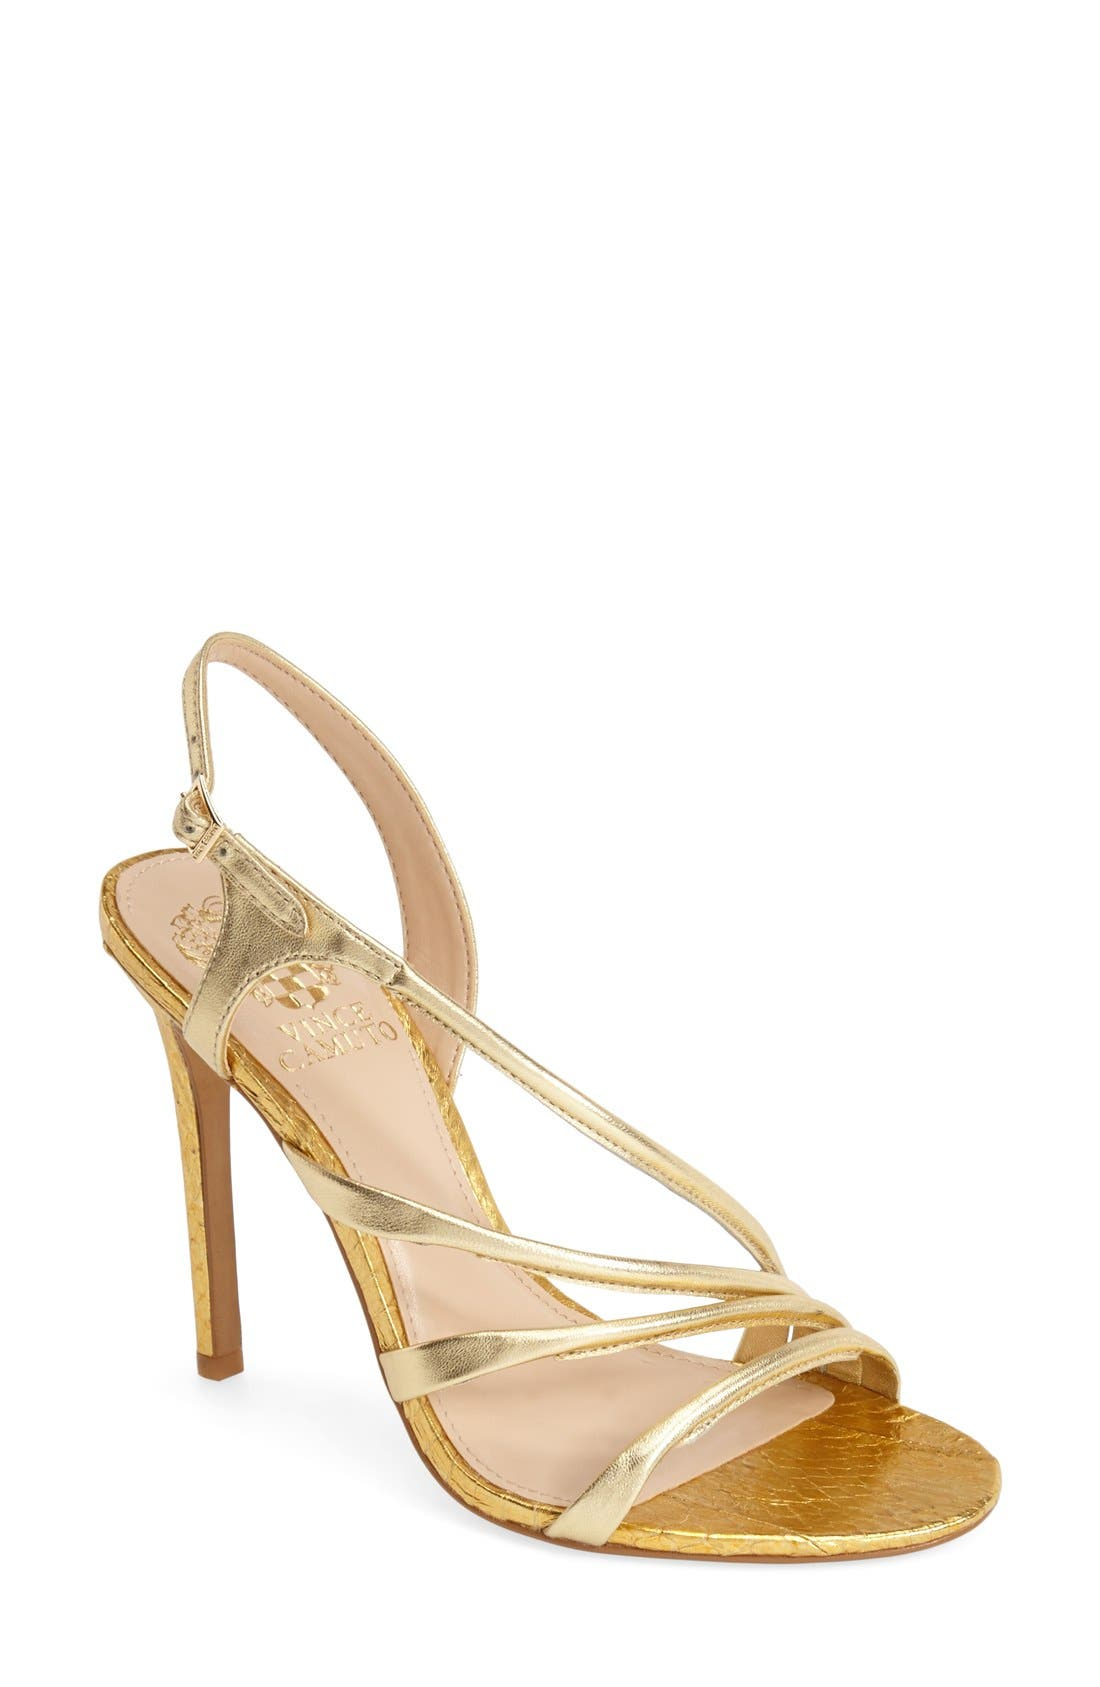 'Tiernan' Strappy Leather Sandal,                             Main thumbnail 1, color,                             Gold